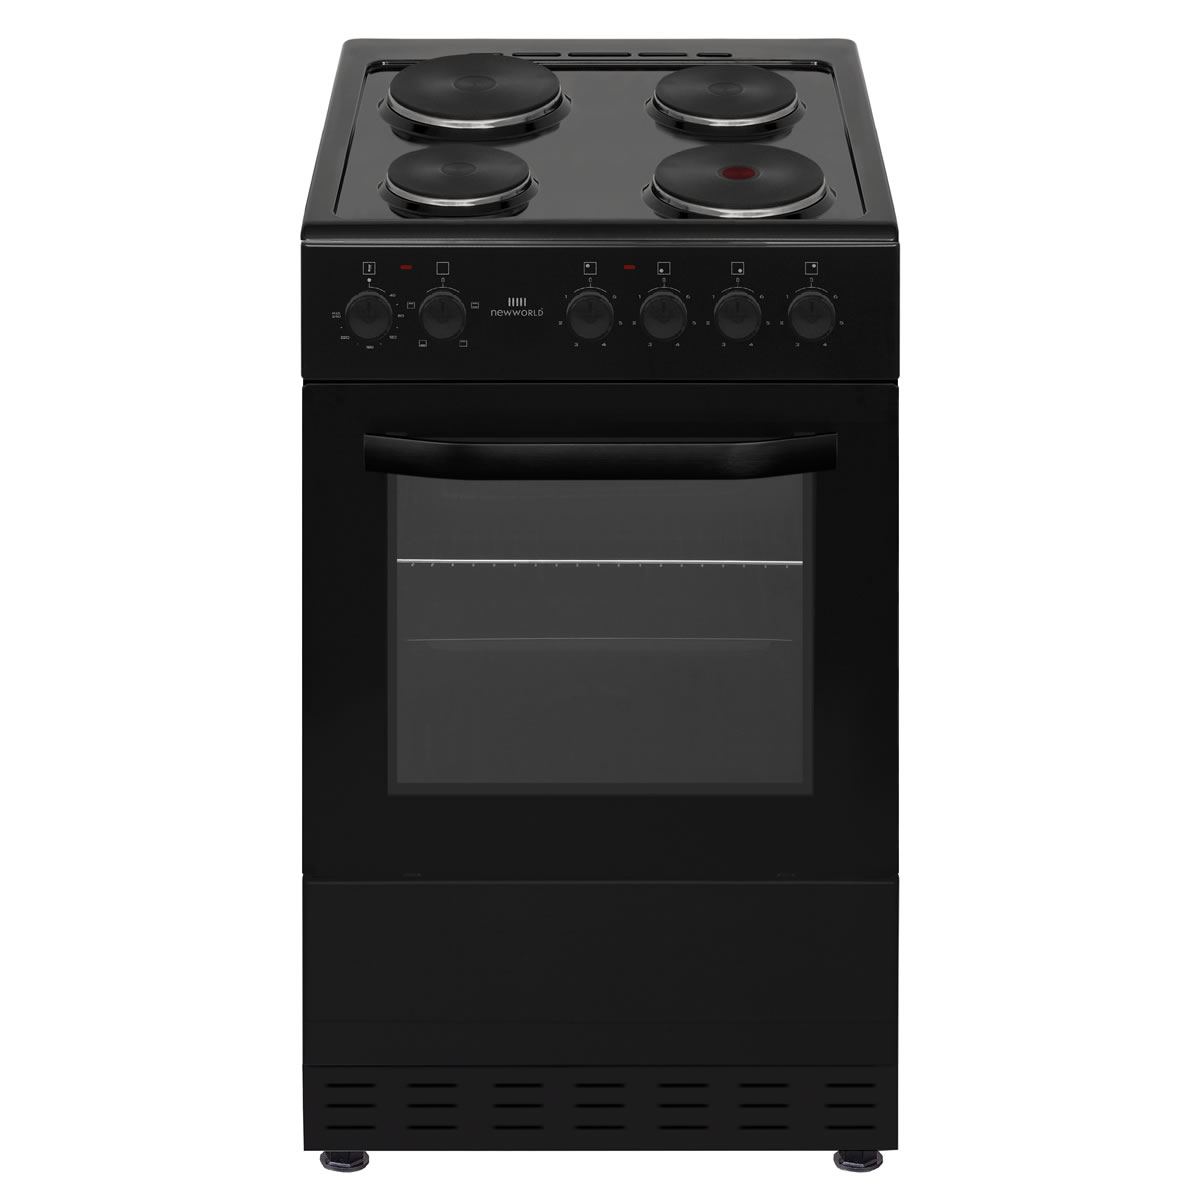 NWMID50EB 500mm Single Electric Cooker Solid Plate Hob Black